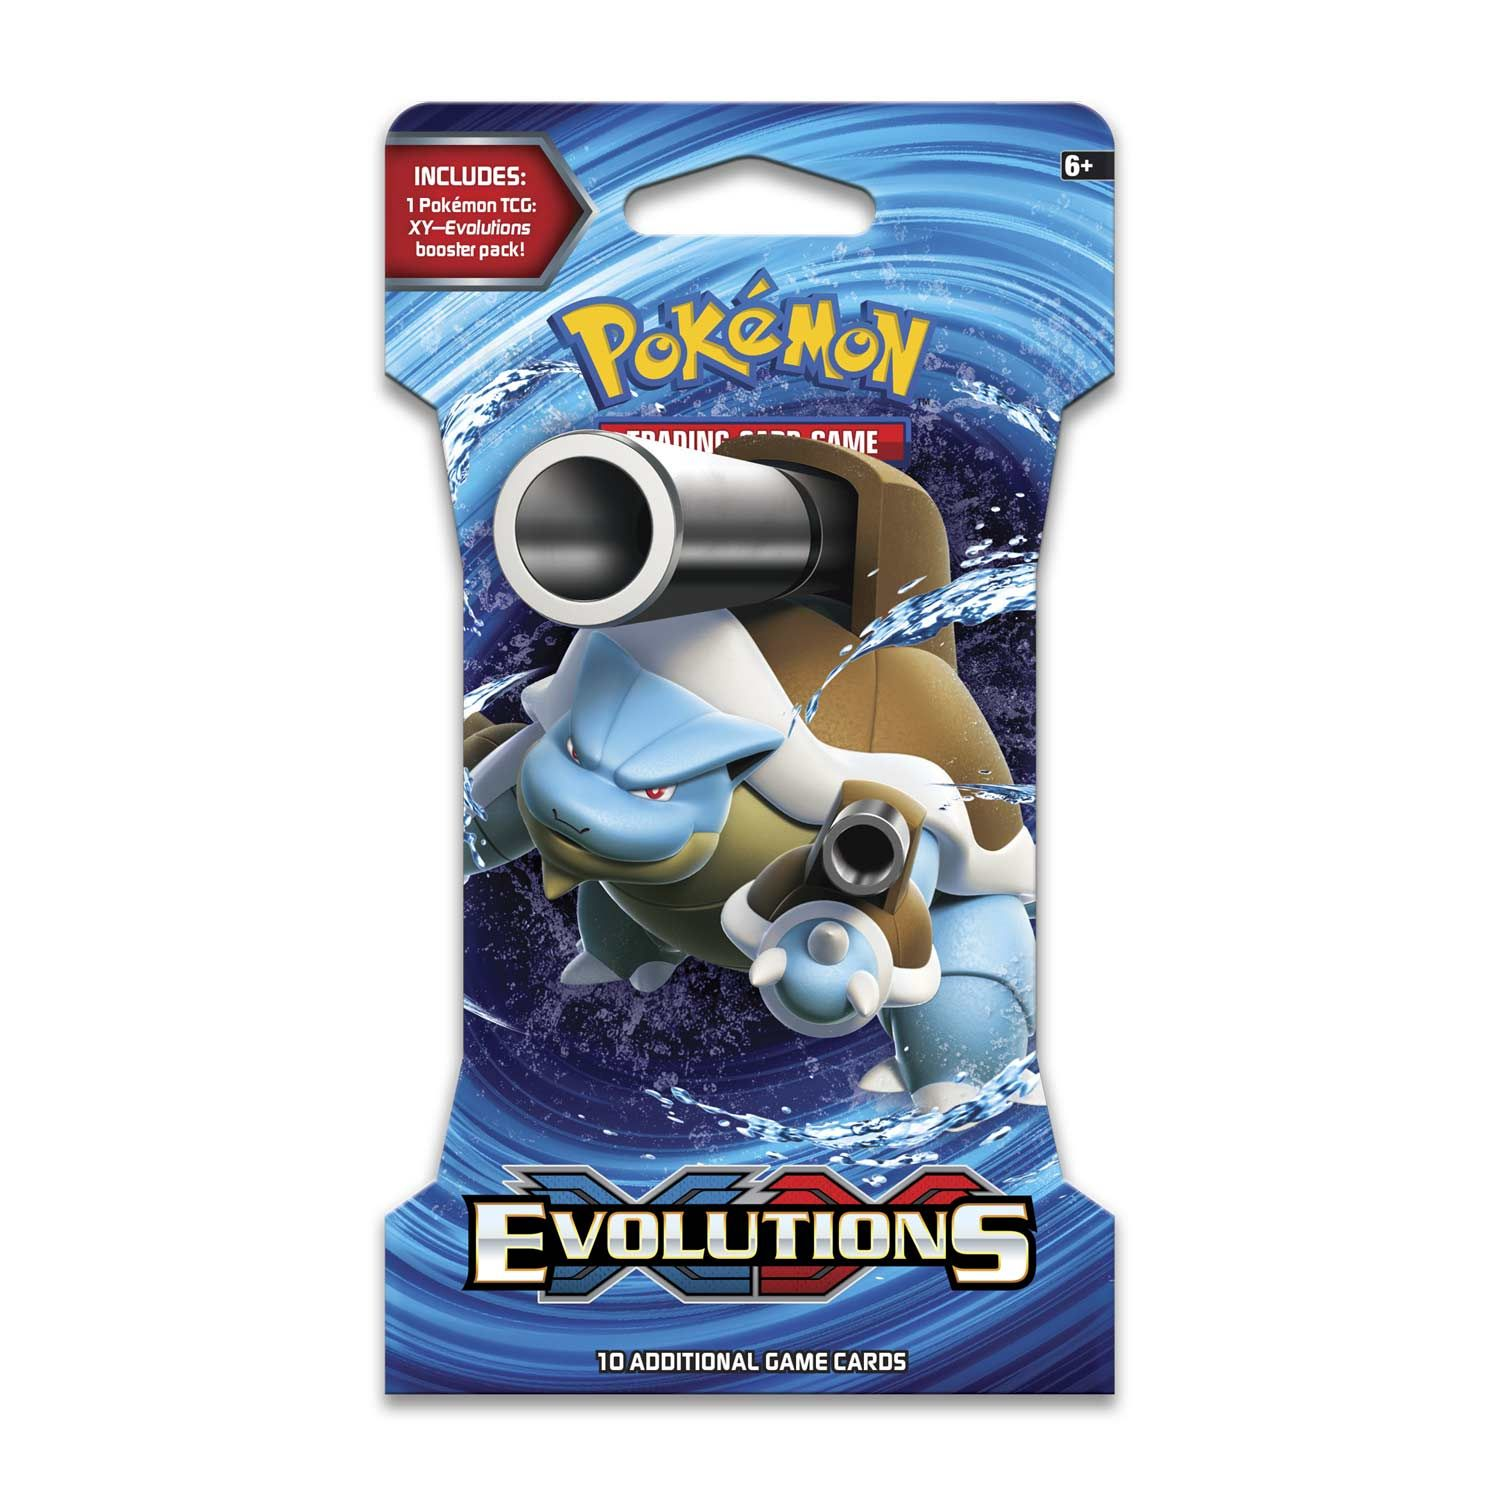 SLEEVED BOOSTER XY EVOLUTION PTC XY EVOLUTION